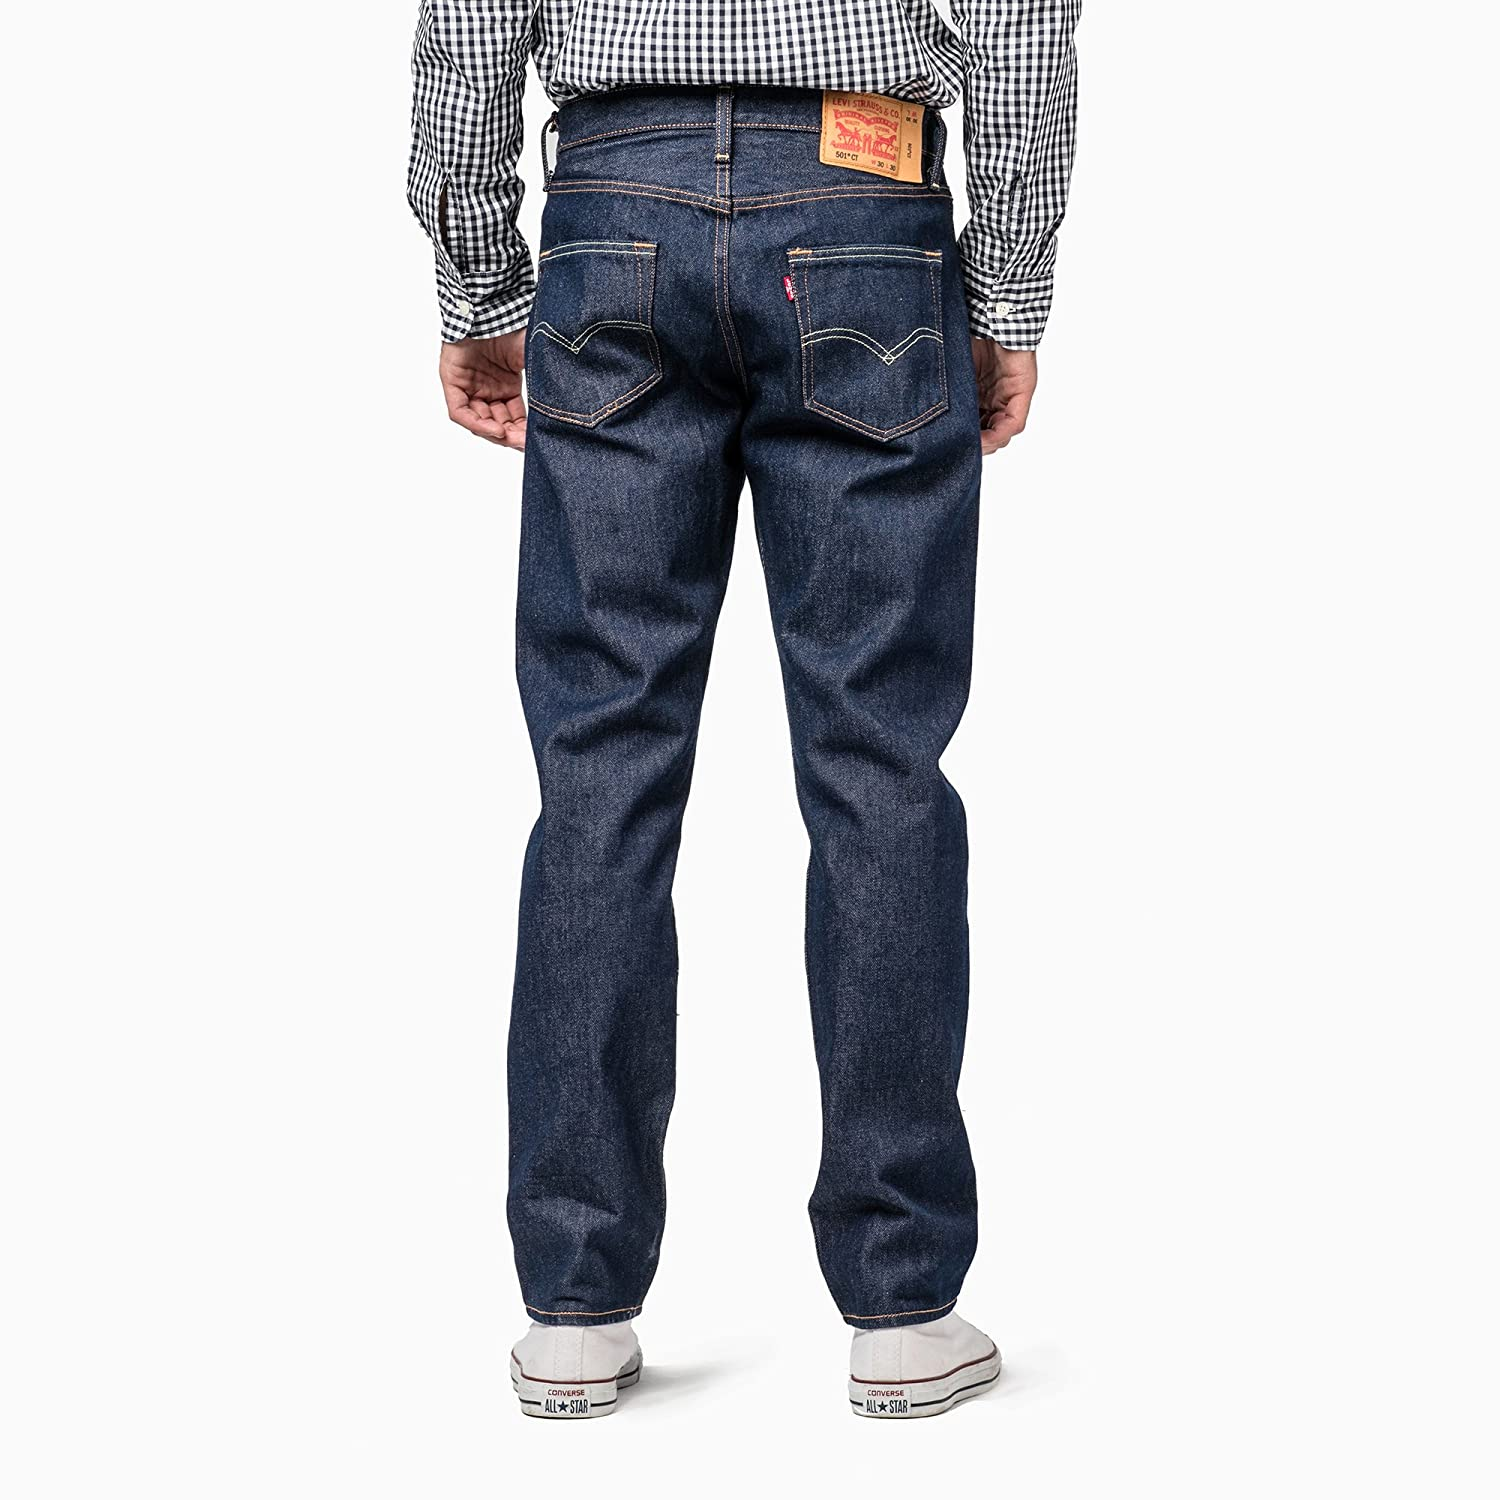 8ba6f1c011a Levi's Men's (501® CT) Regular Fit Jeans (28894-0017_Blue_42): Amazon.in:  Clothing & Accessories